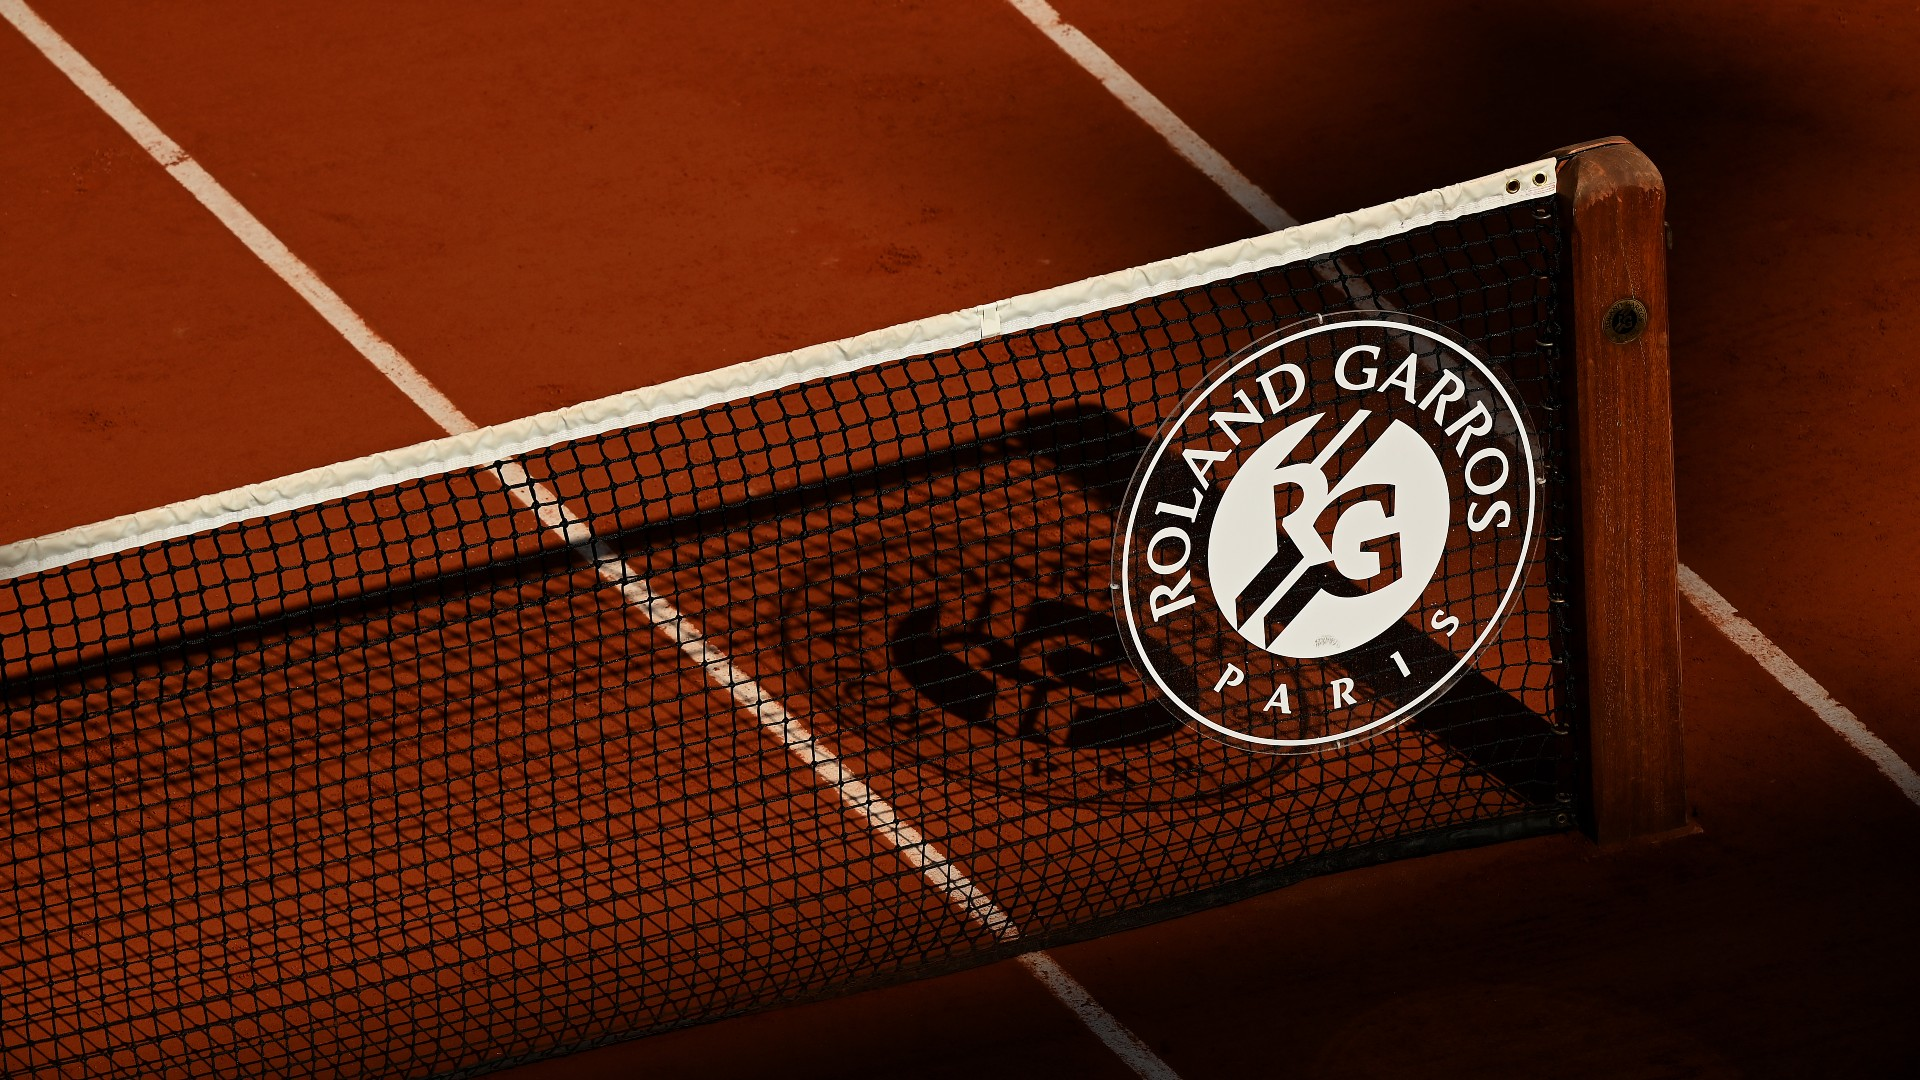 French Open schedule 2021: Full draws, TV coverage, channels & more to watch every tennis match